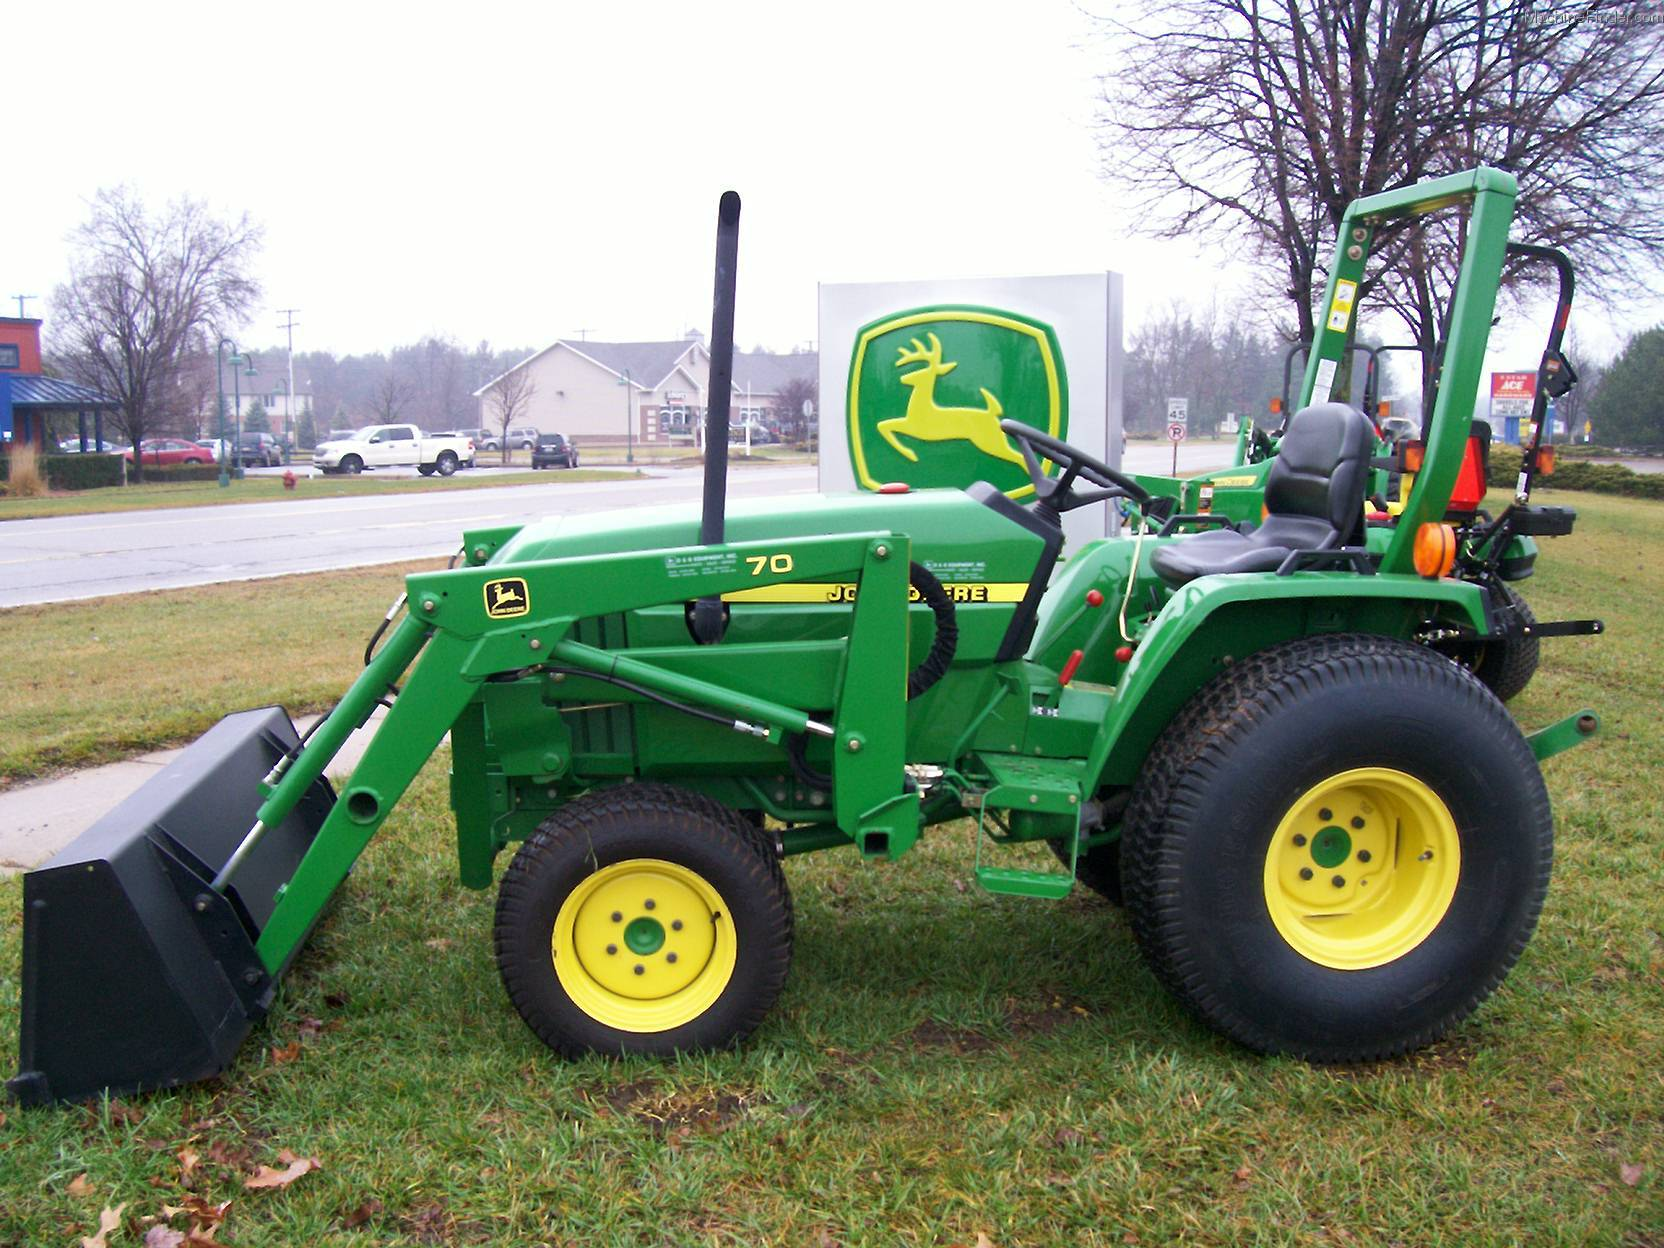 John Deere Tractor 790 Parts Manual Today Guide Trends Sample Wiring Diagrams For Jd Back Hoe Bing Images Schematic 4wd Tractors